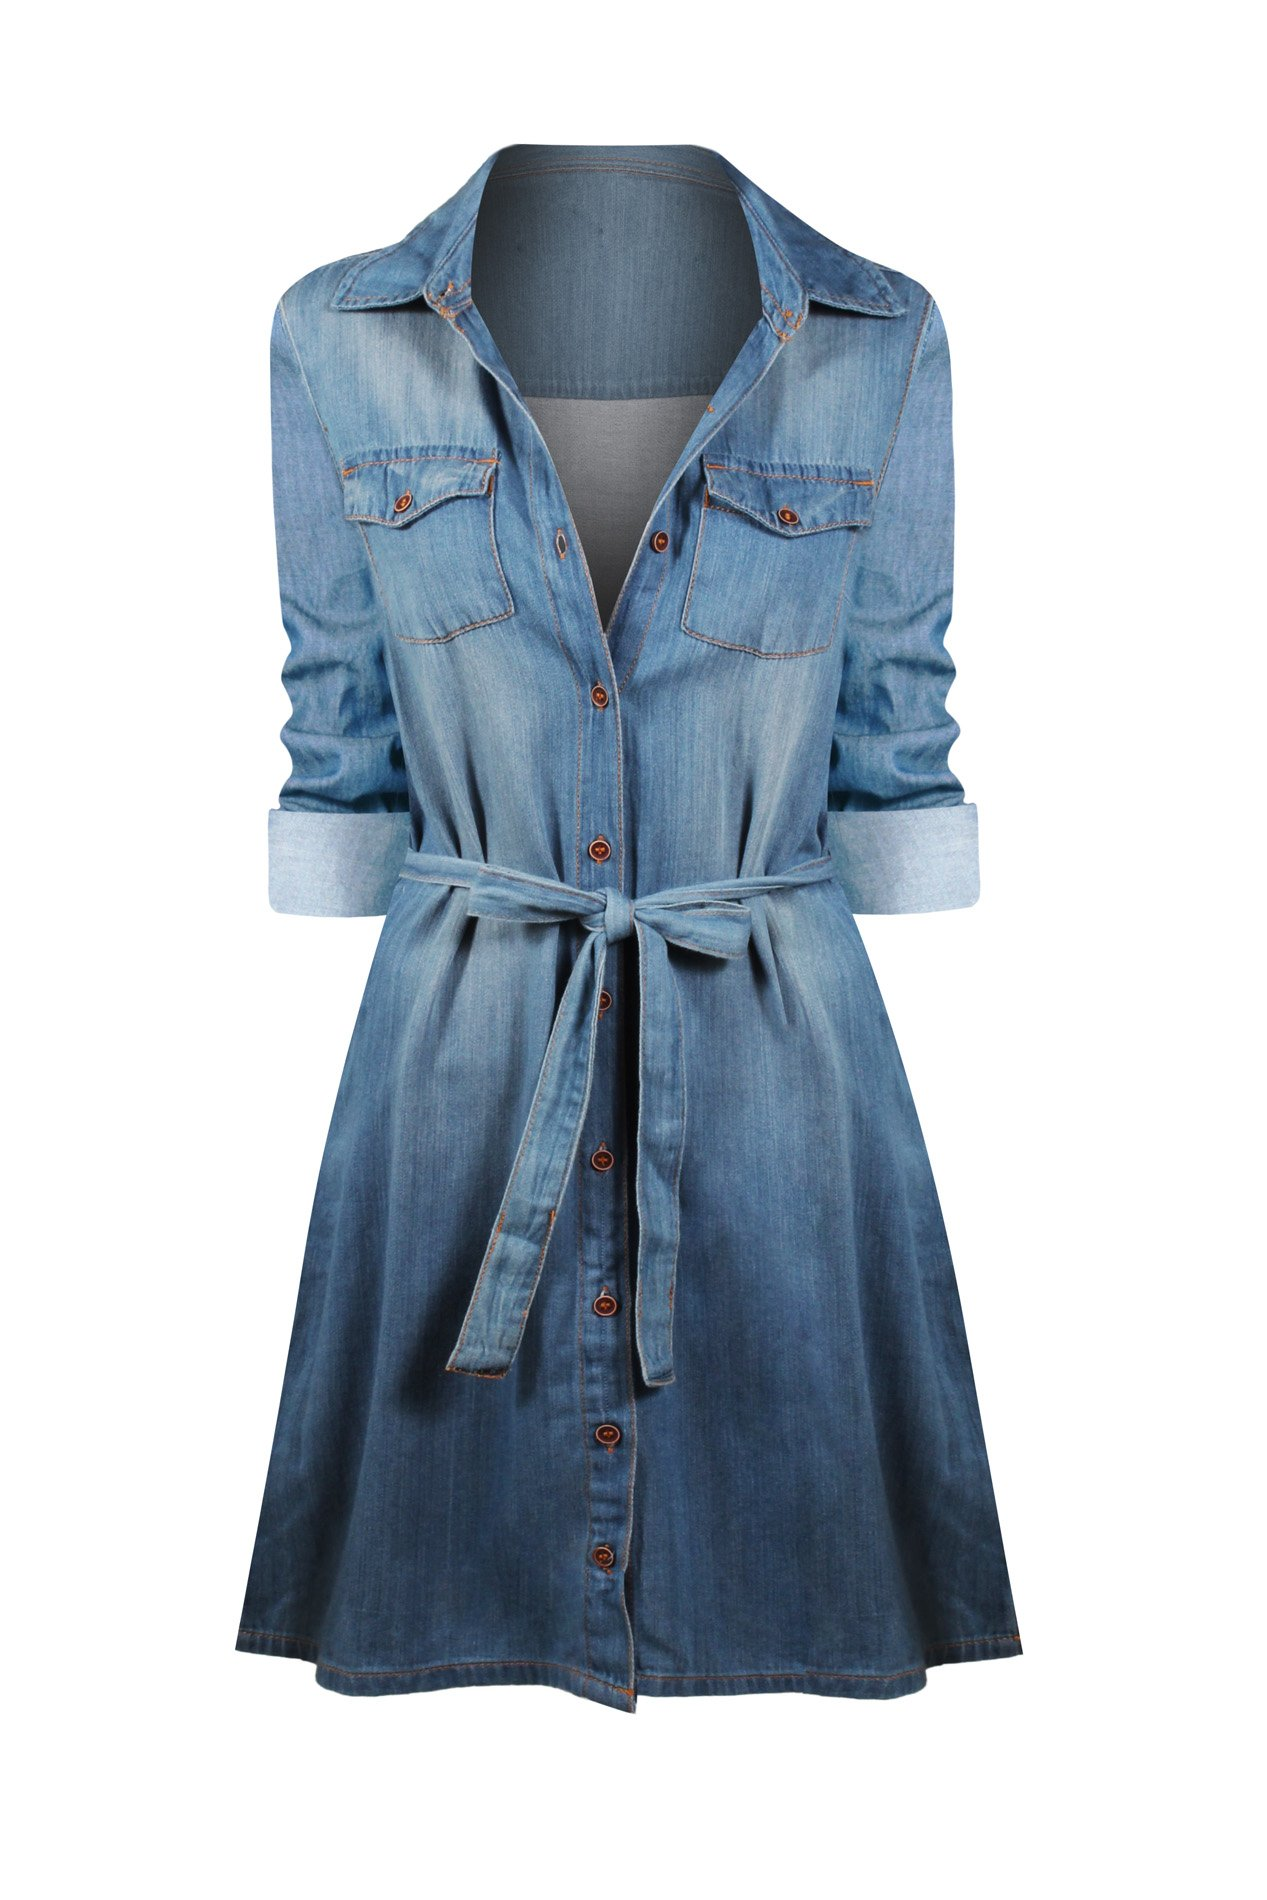 HOT FROM HOLLYWOOD Women's Casual Button Down Cotton Denim Pocket Fitted Dress